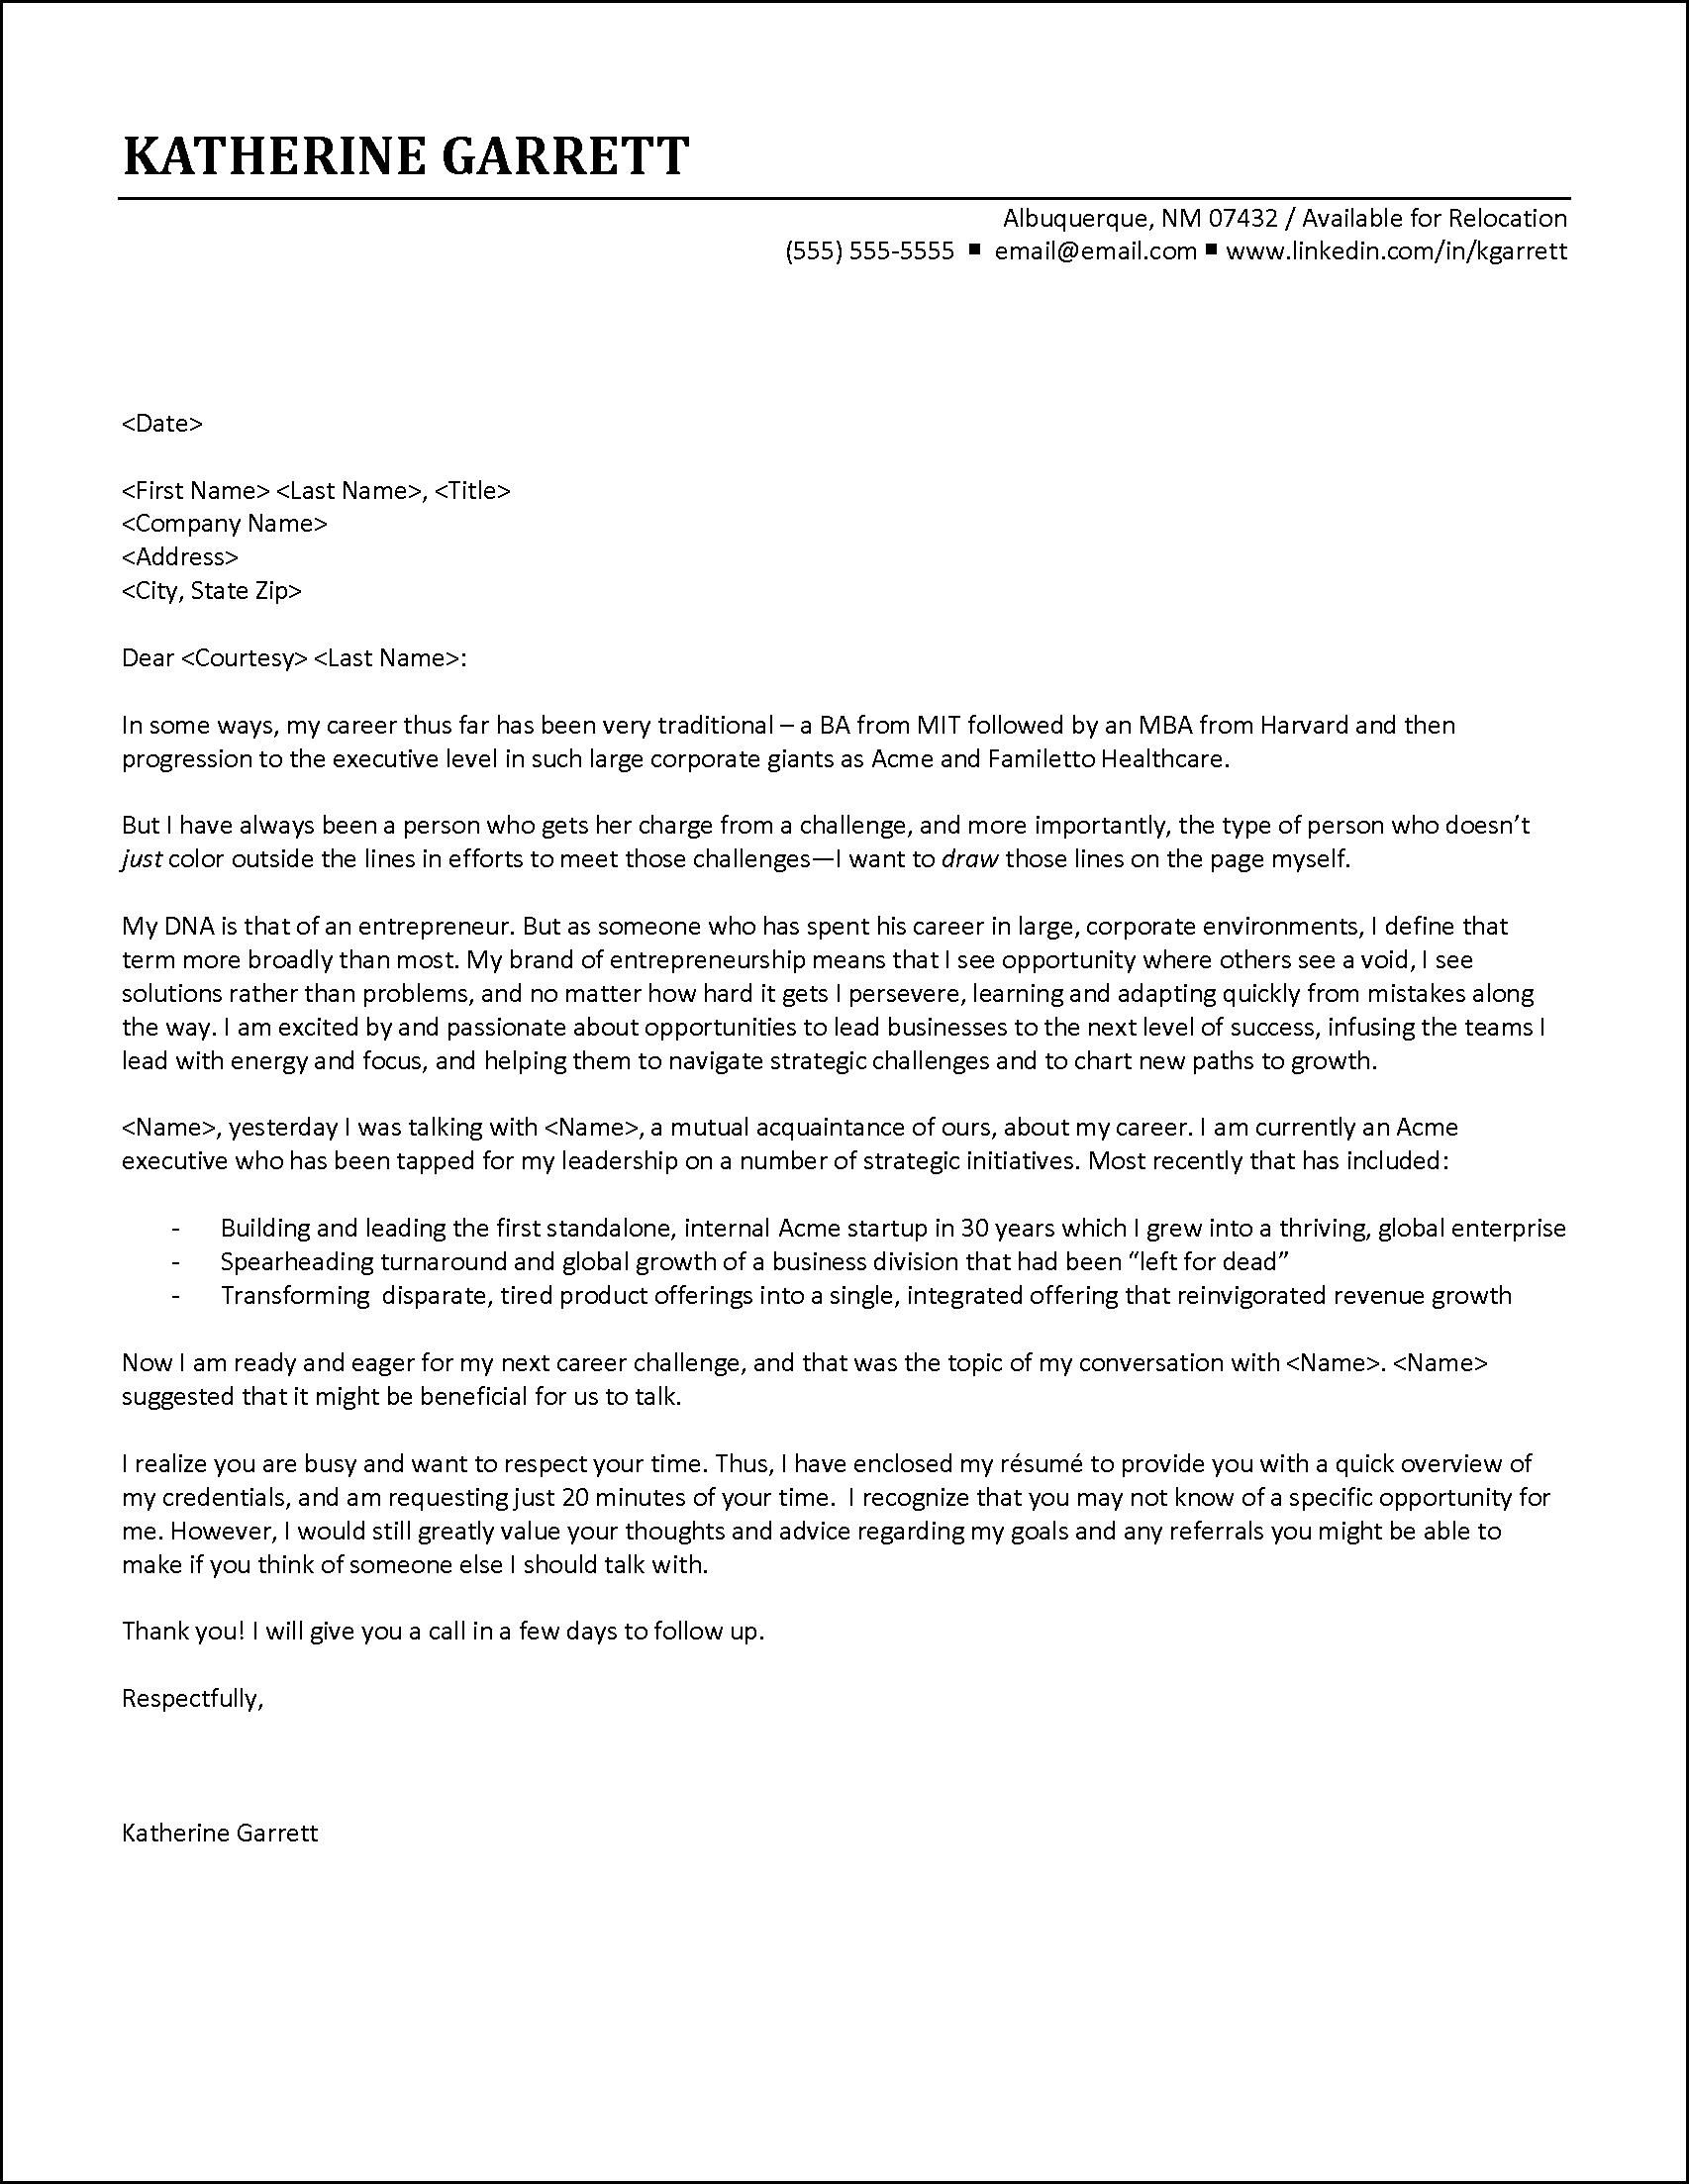 Executive Cover Letter Example - Contact Based on Referral